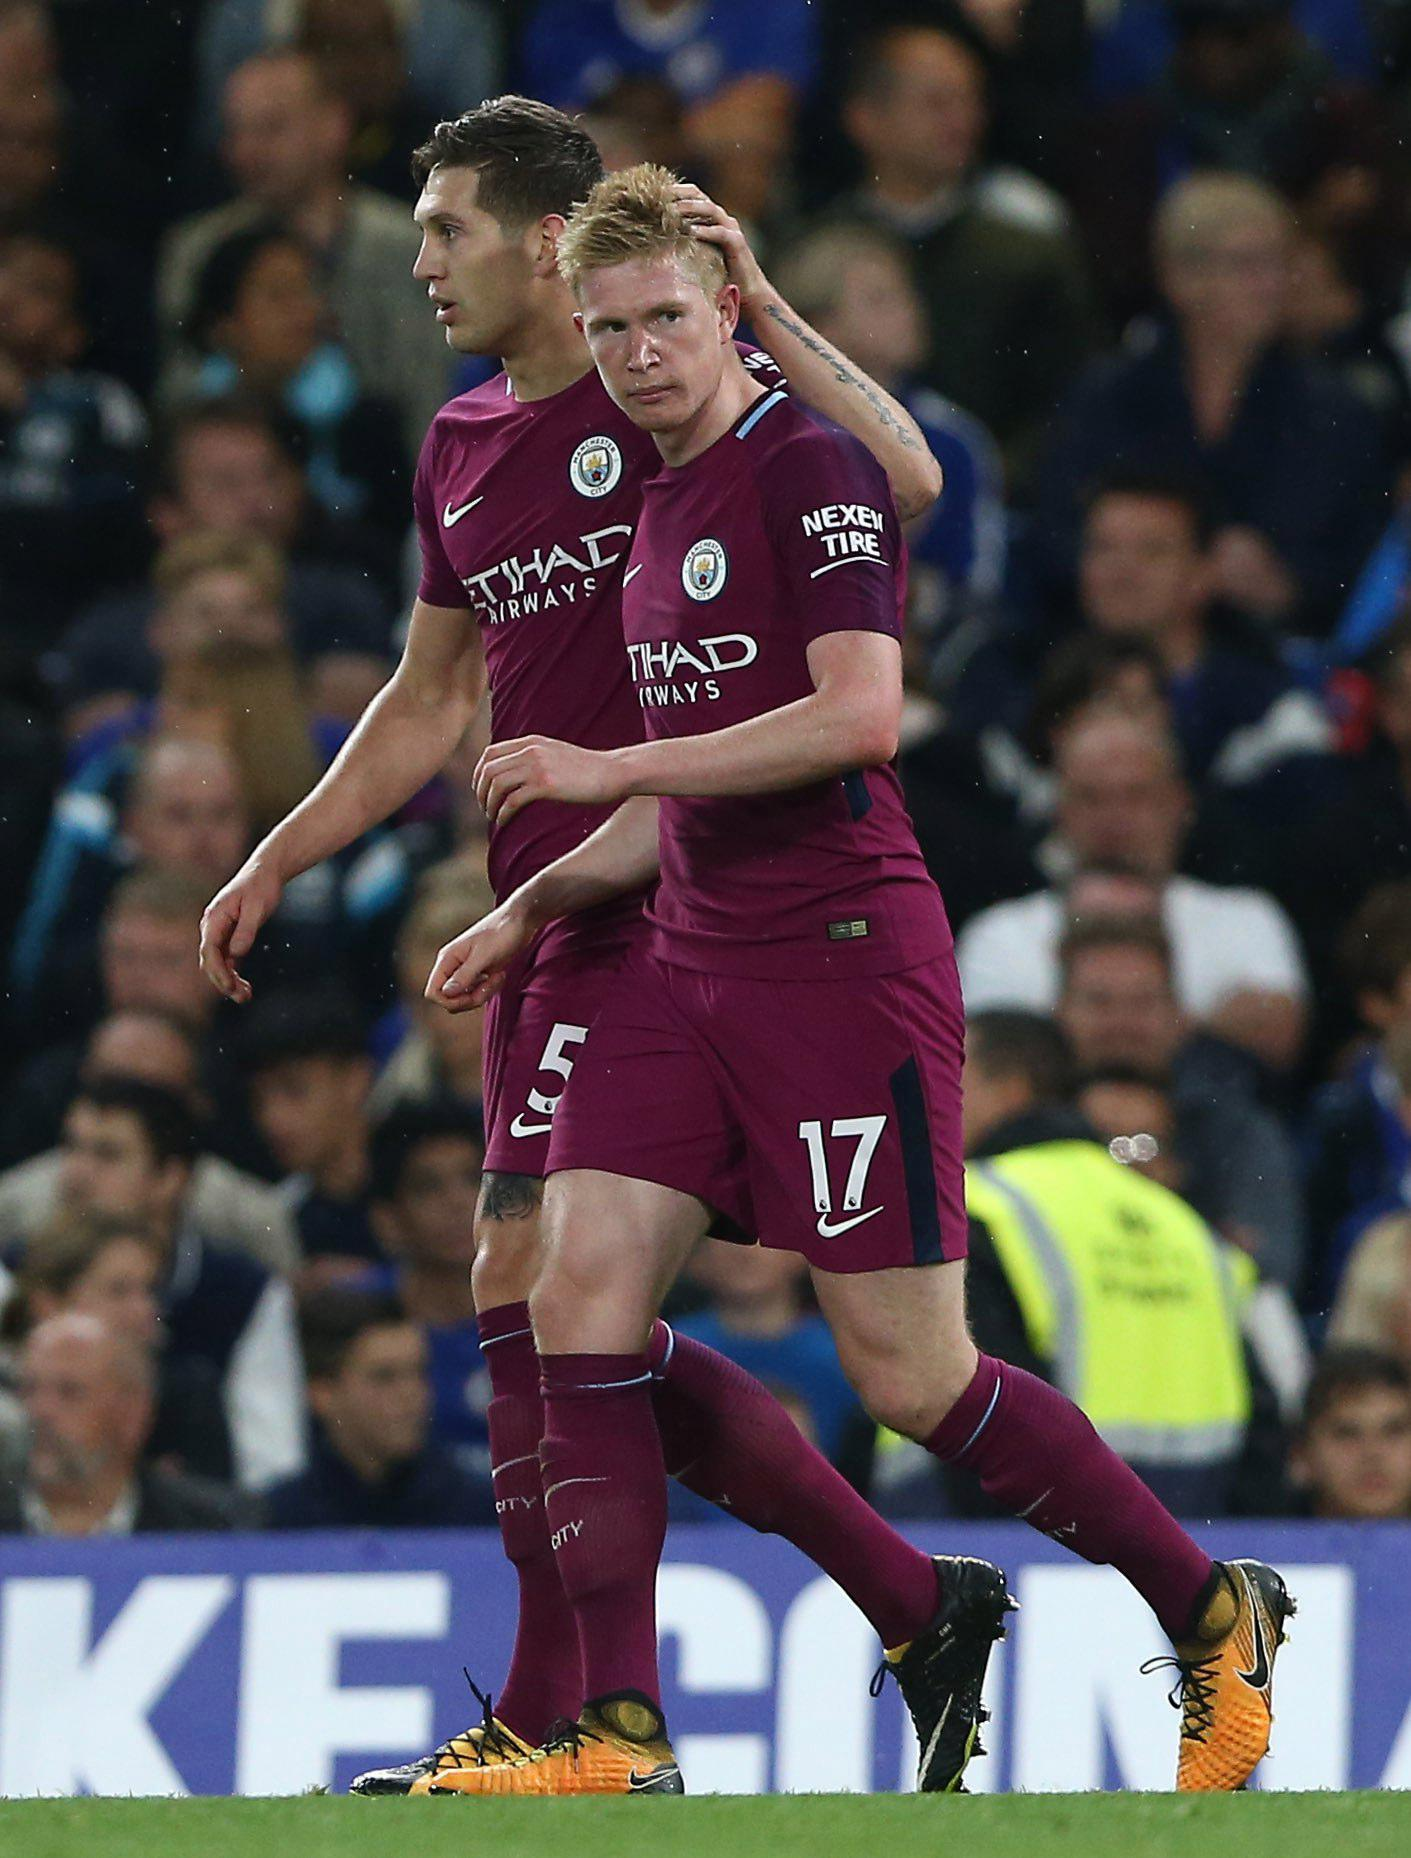 Kevin De Bruyne has the chance to stake his claim as the best in the world